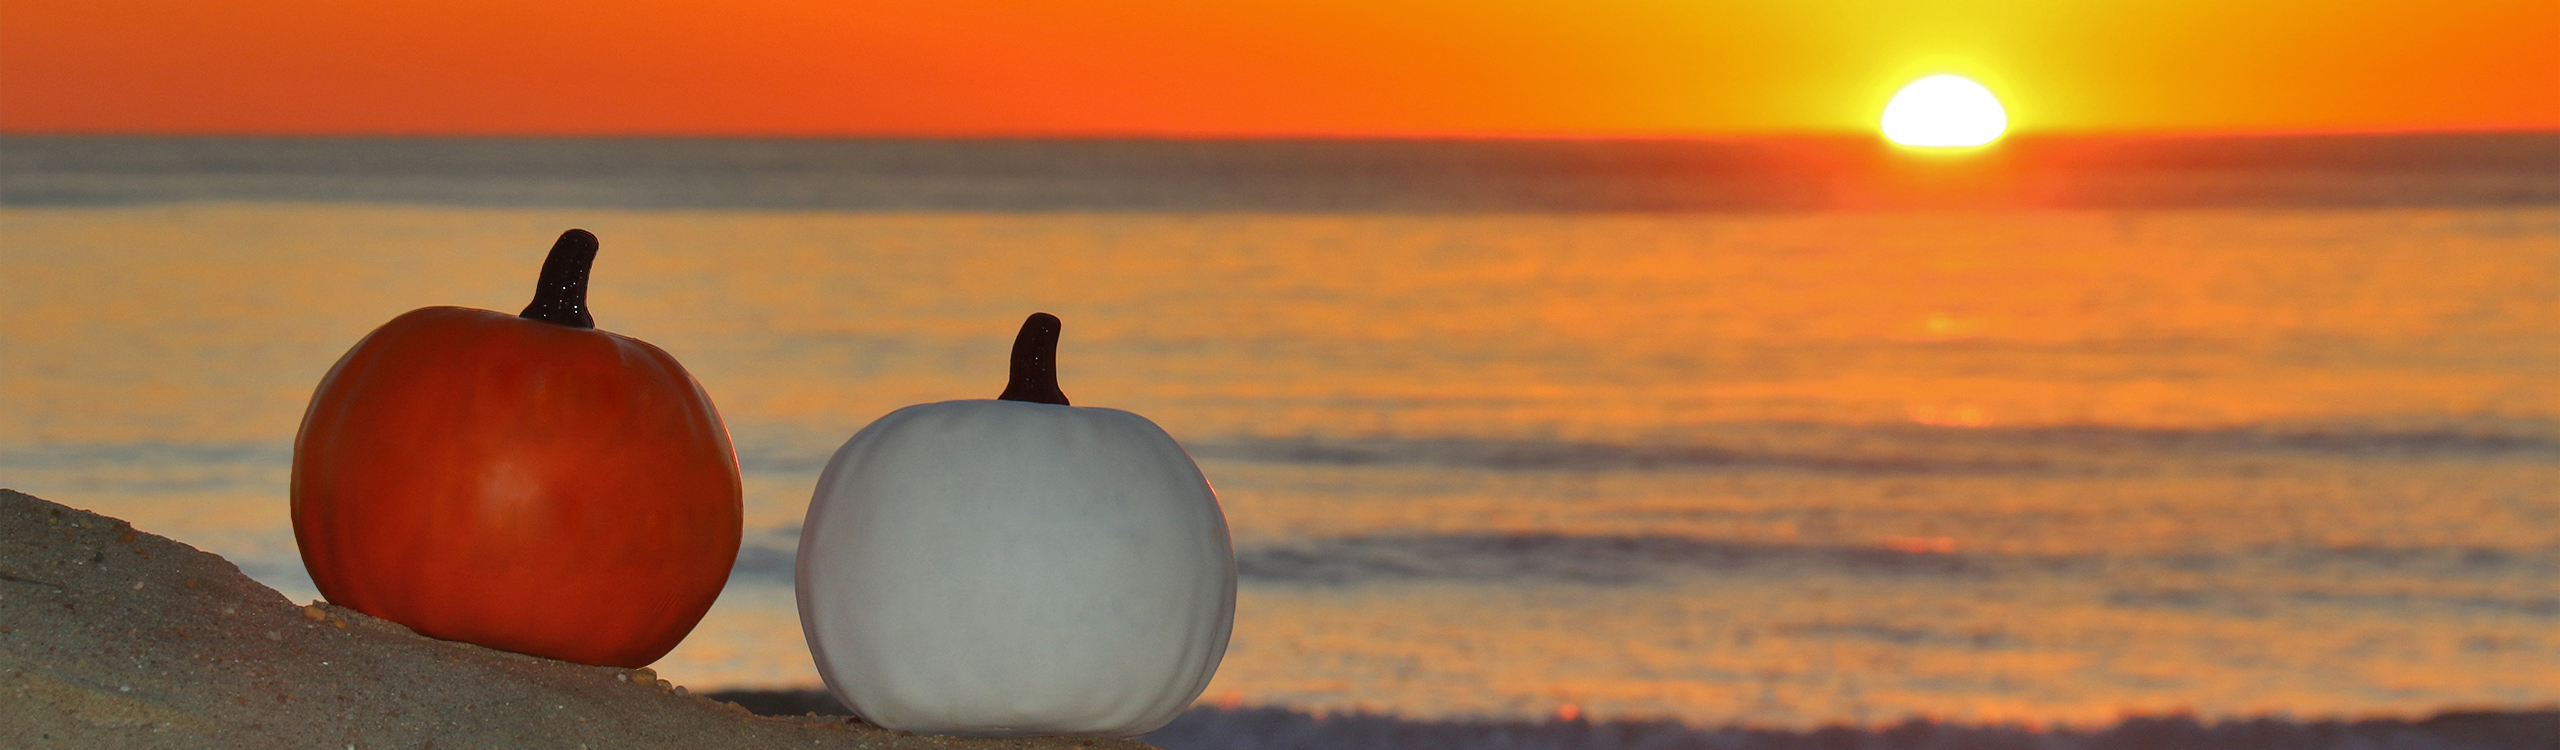 an orange and a white pumpkin on the beach with sunrise in the background over the water